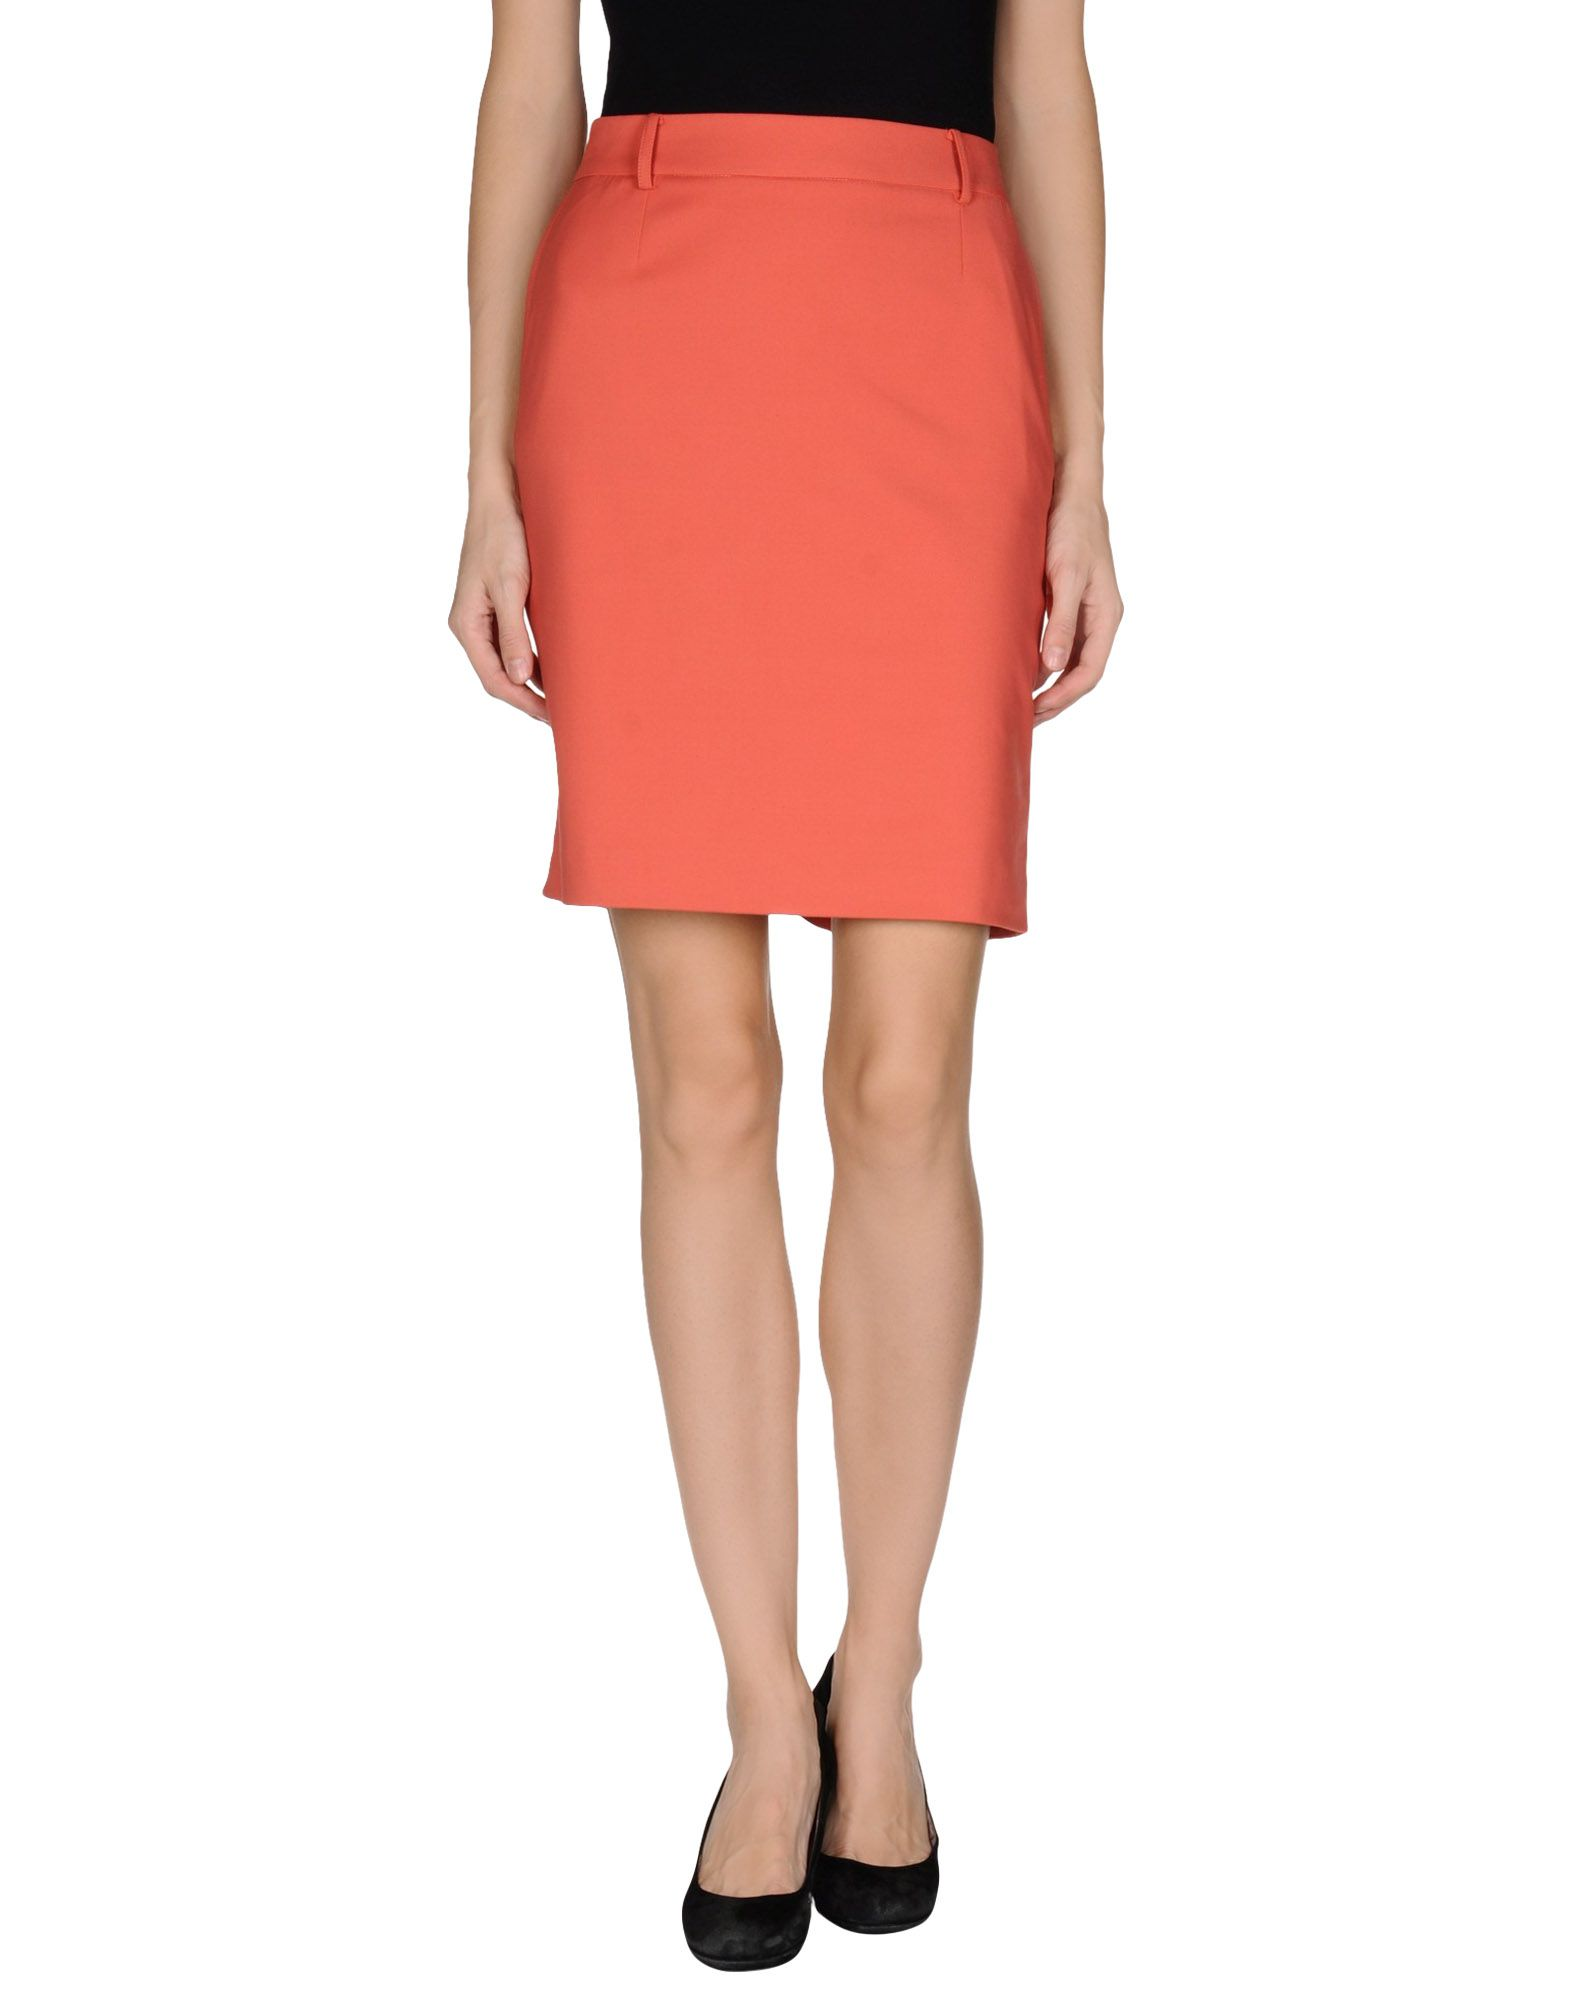 patrizia pepe knee length skirt in pink coral lyst